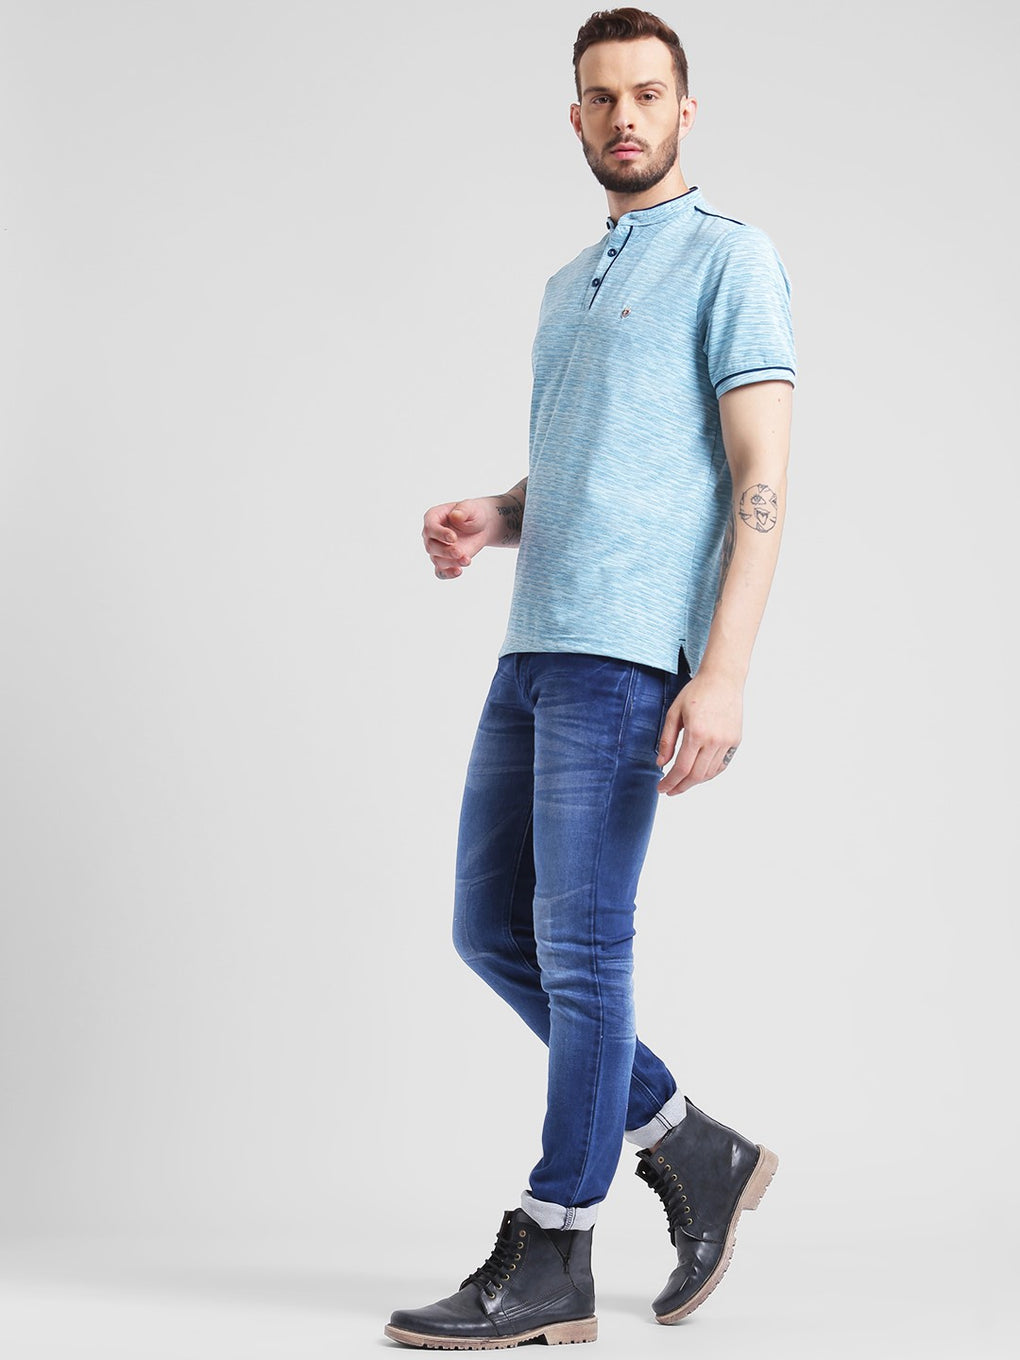 cobb aqua blue mandarin neck t-shirt